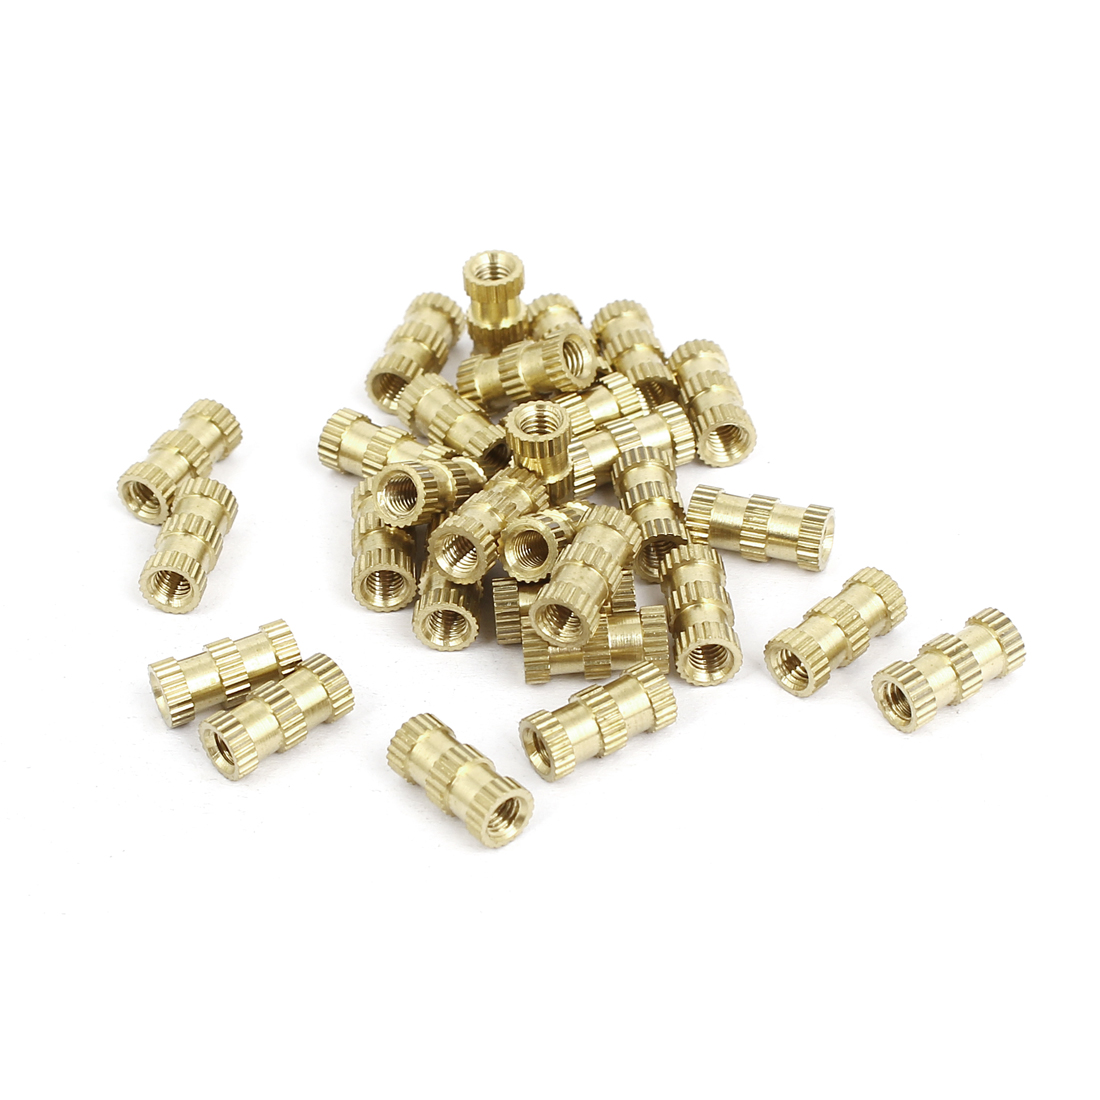 M3x10mmx4.8mm Brass Knurled Threaded Nut Insert Embedded Nuts Gold Tone 30pcs